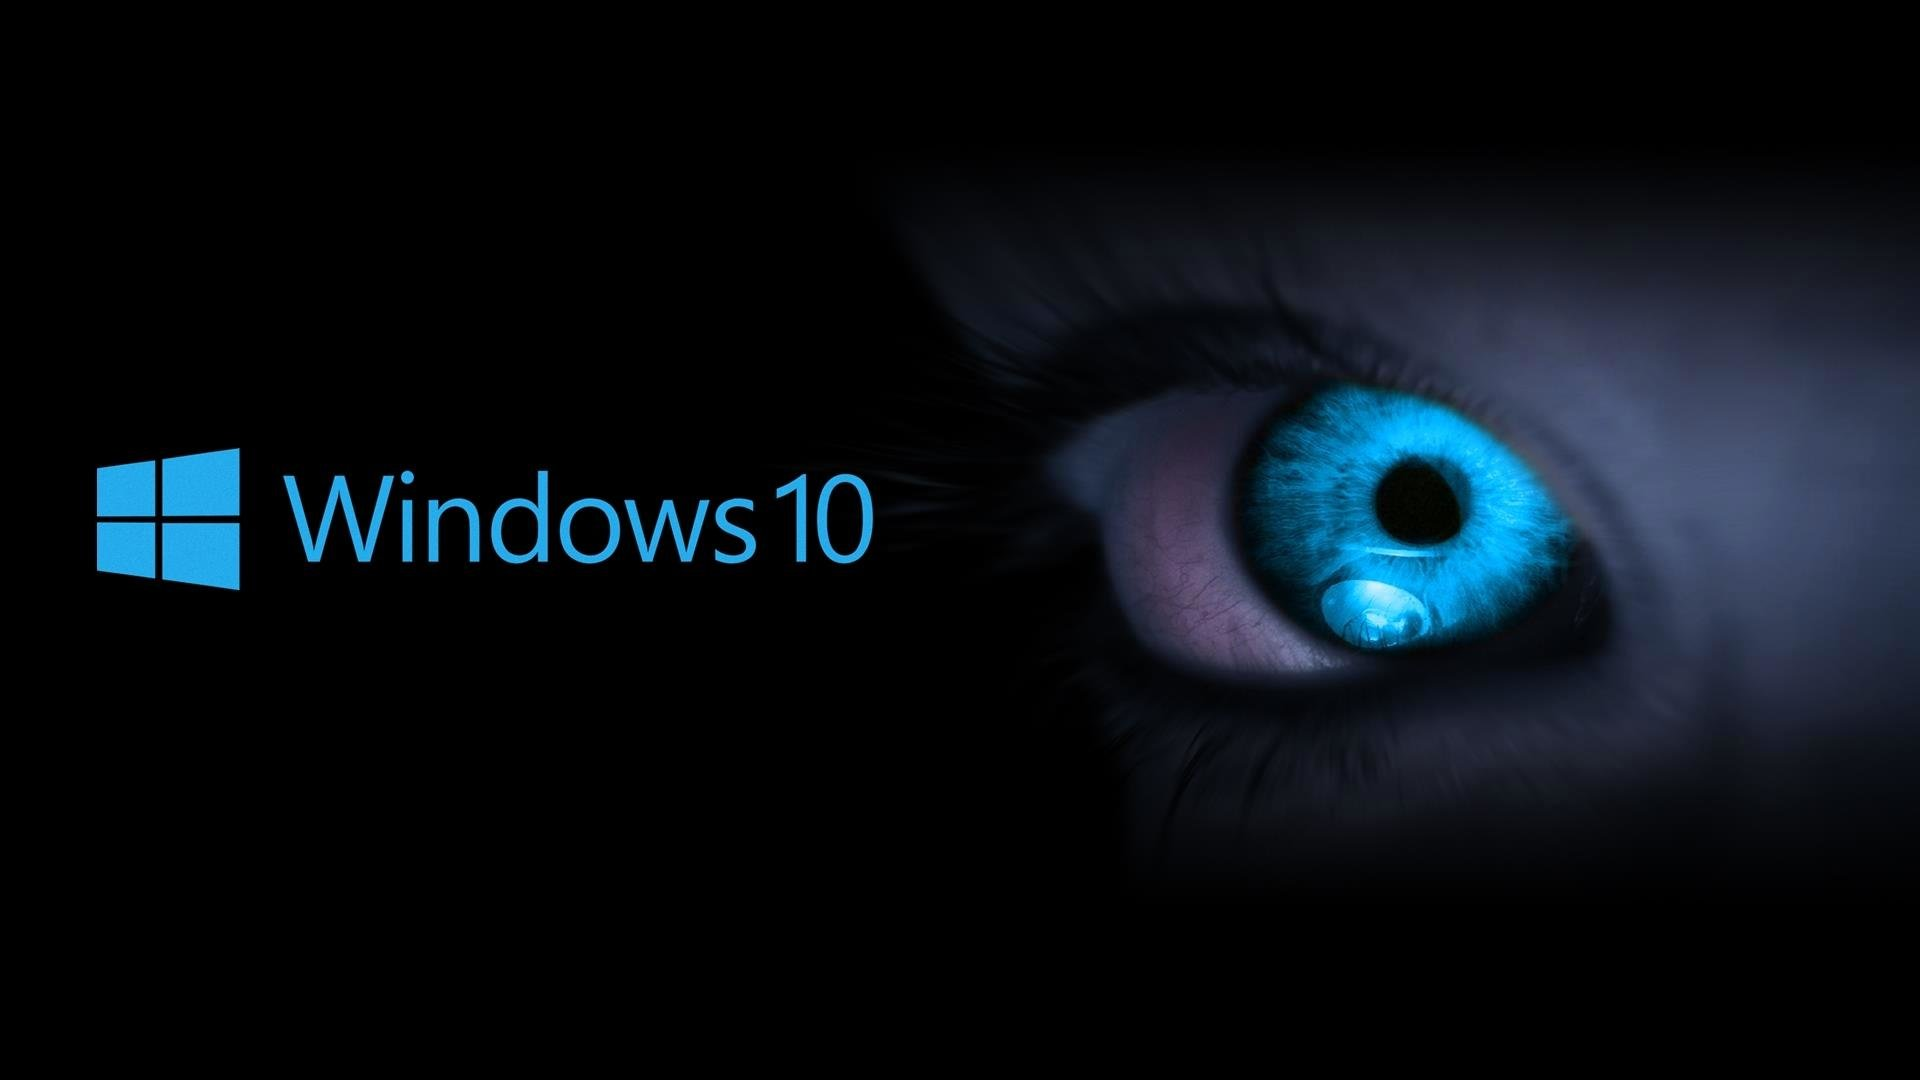 Awesome Windows 10 free wallpaper ID:130281 for full hd 1920x1080 desktop